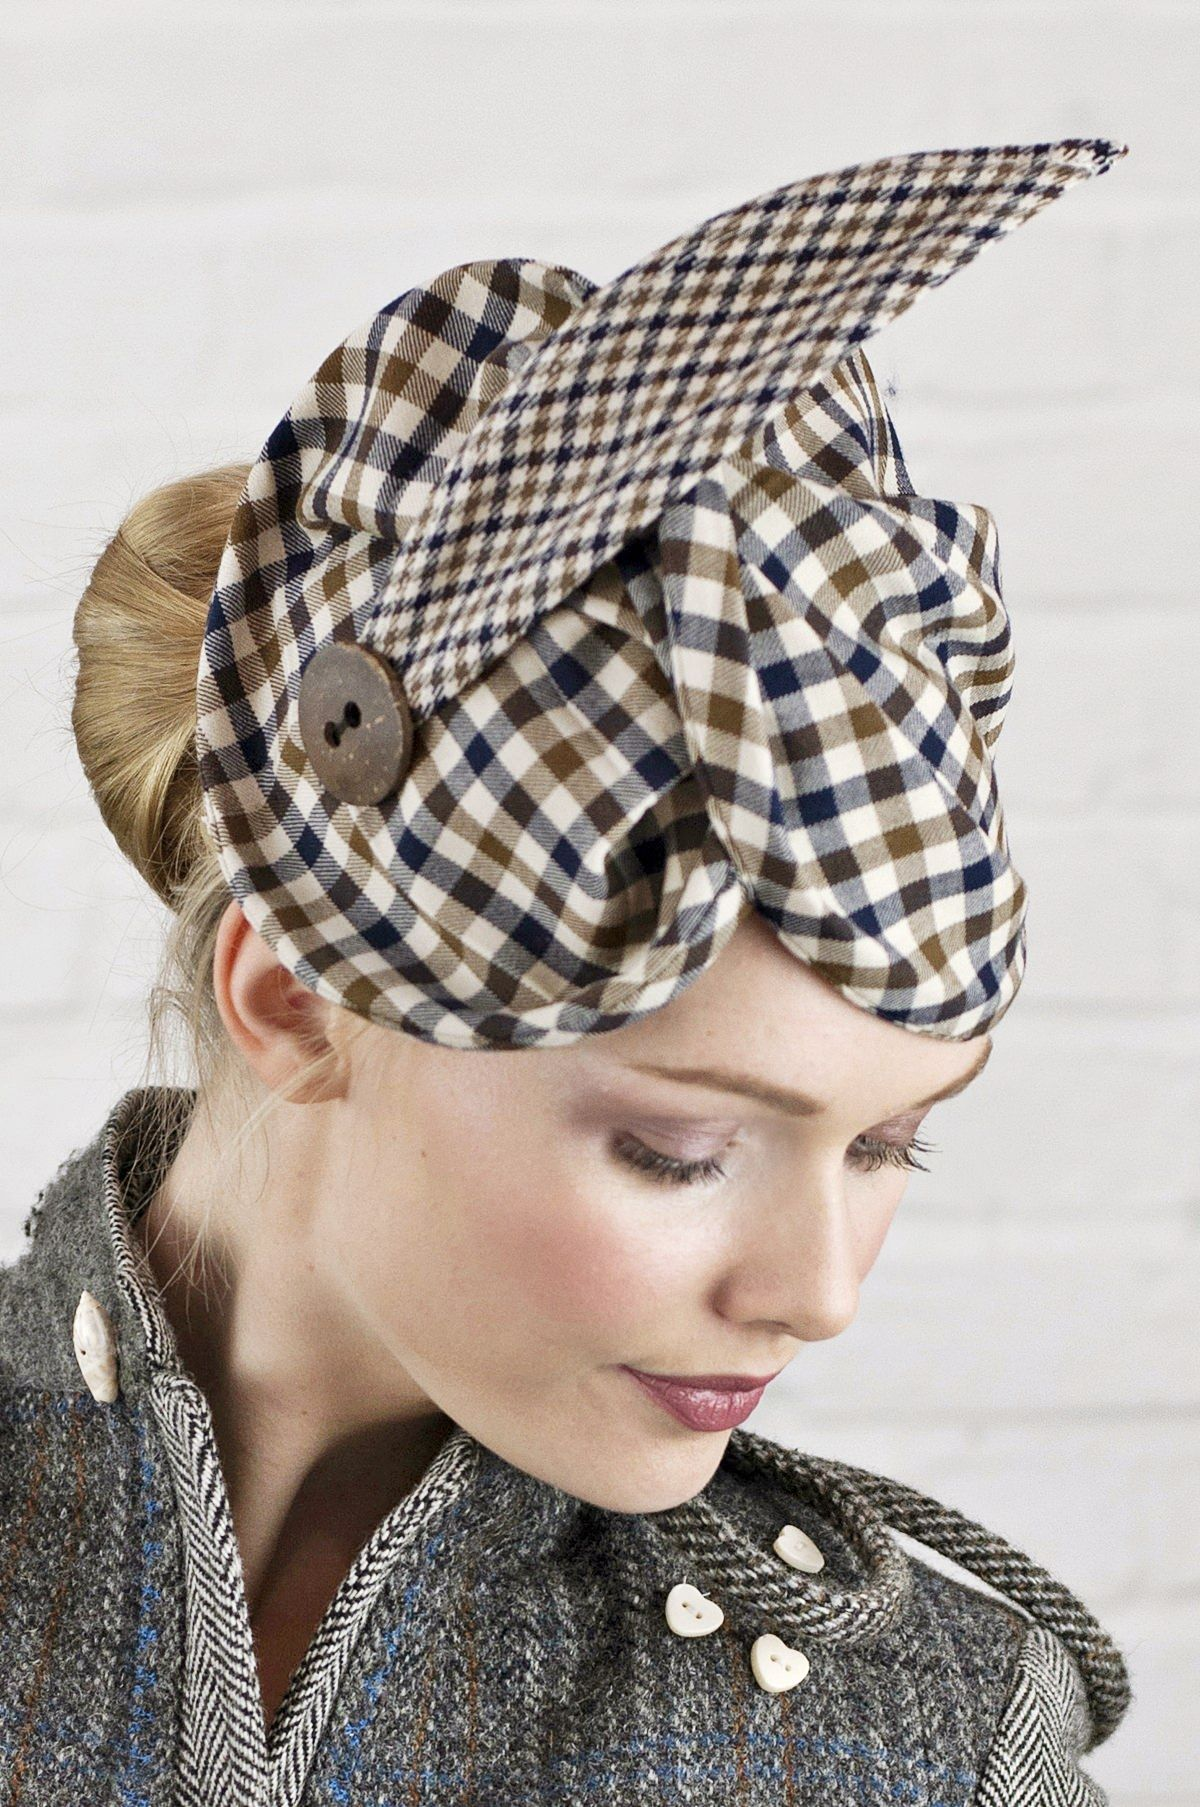 4baf4a4057a382 #tartan #tartanhat #tartanstyle #millinery #model #photoshoot #madeinuk  #harristweed #handcrafted #uniqueheadwear